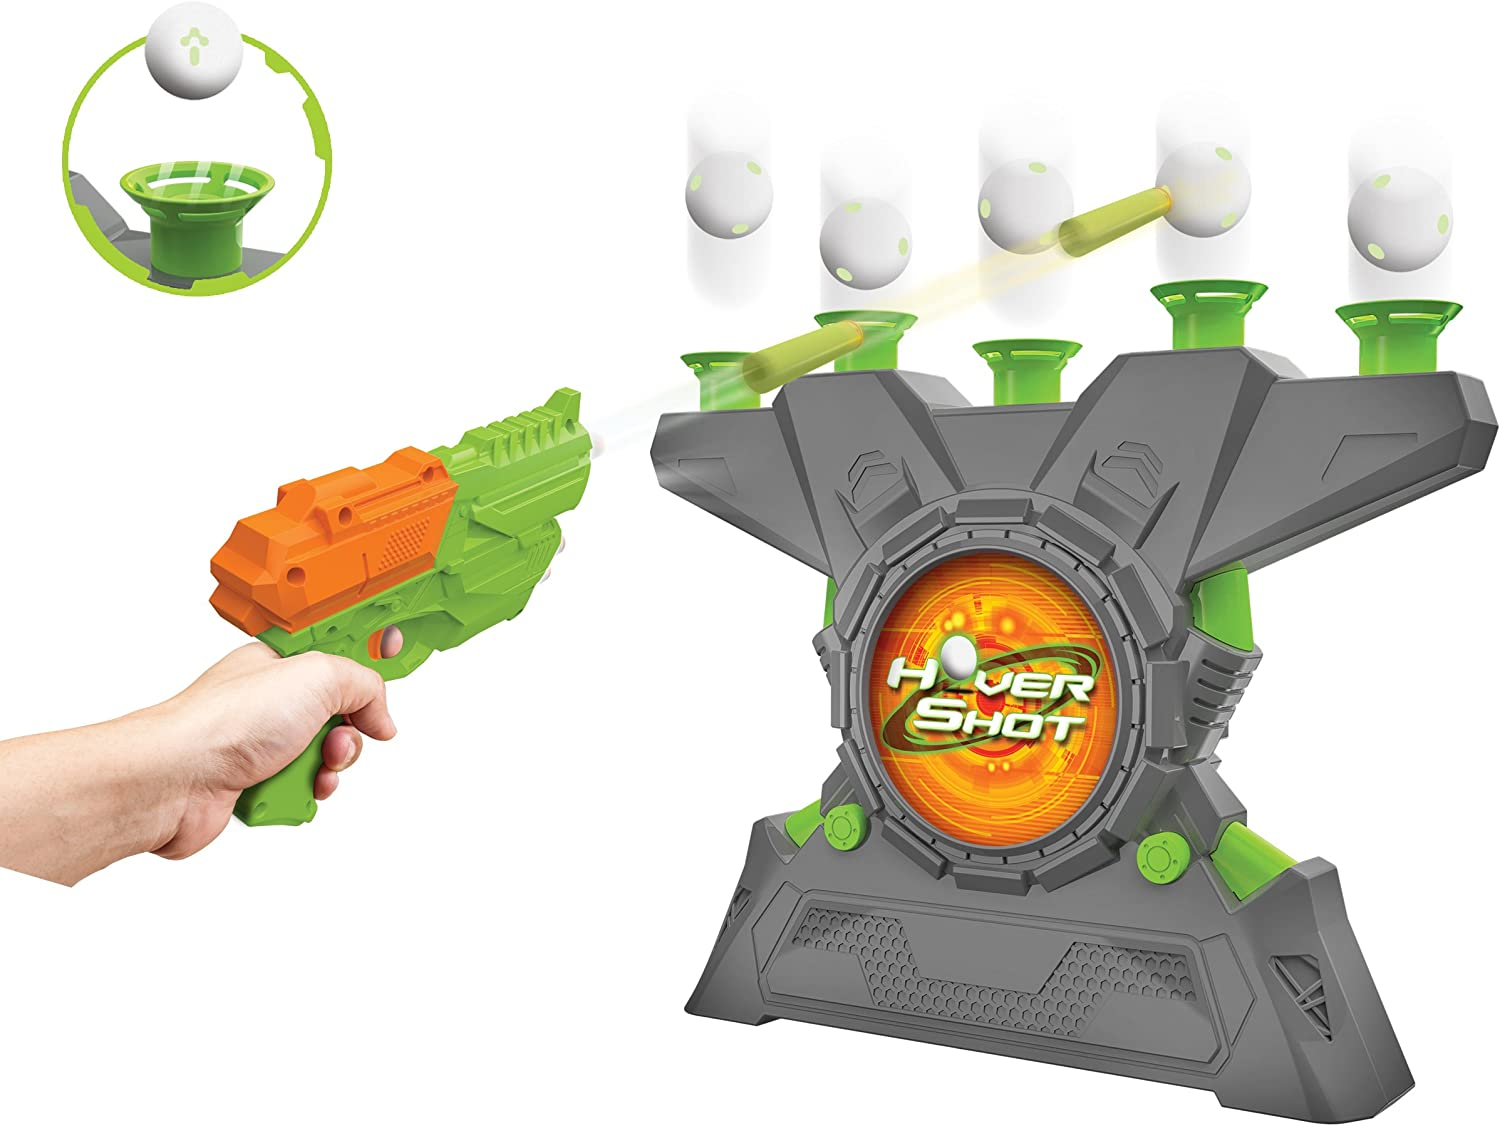 Merchant Ambassador Hover Shot 2.0 Game  air Powered Blaster, Foam Darts with Glow in The Dark Targets